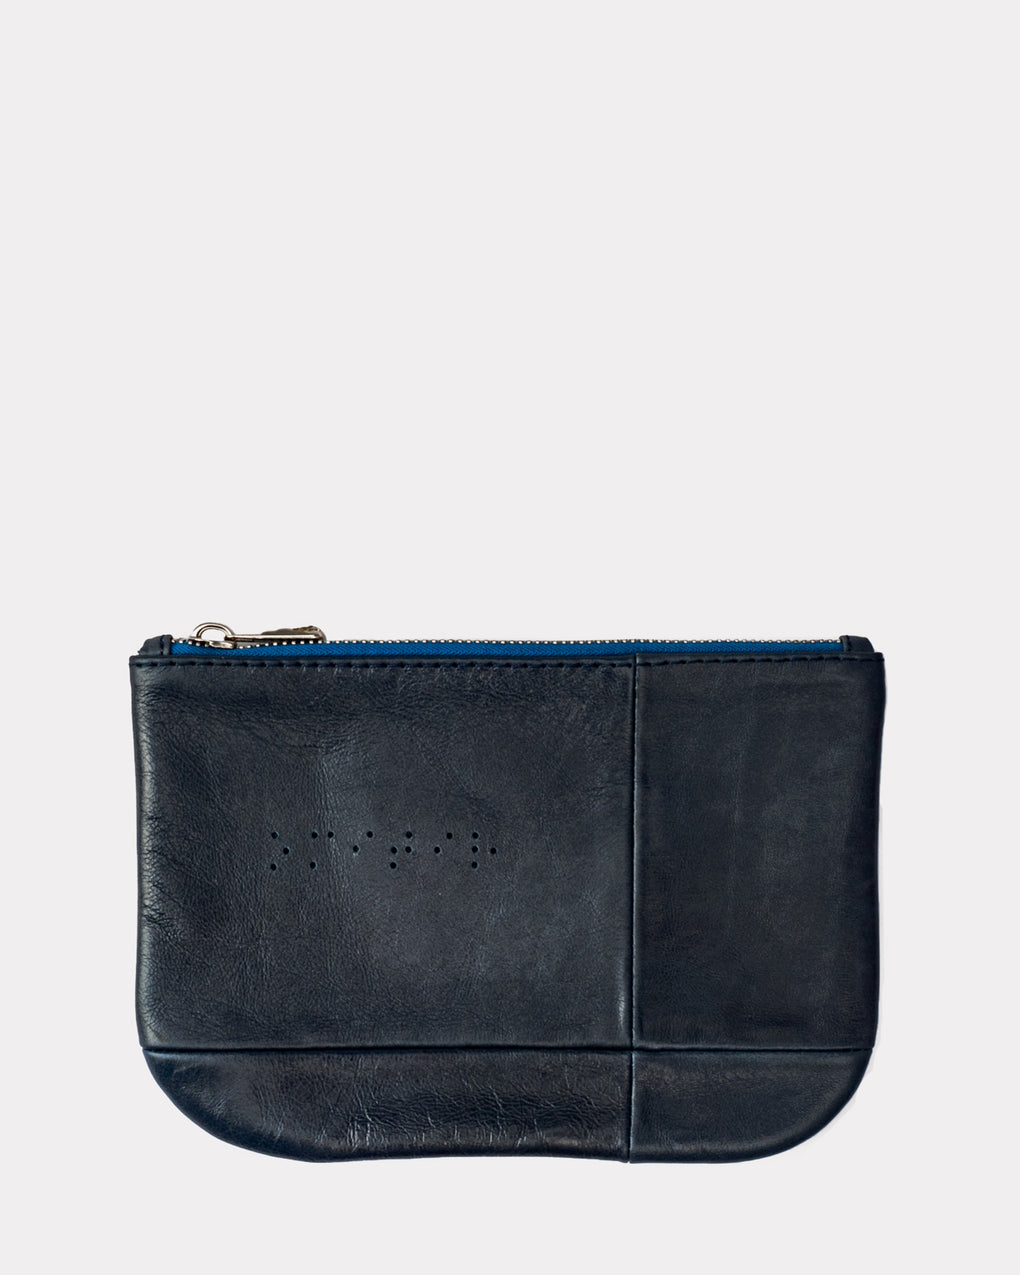 Bauhaus Pouch Medium - Petroleum